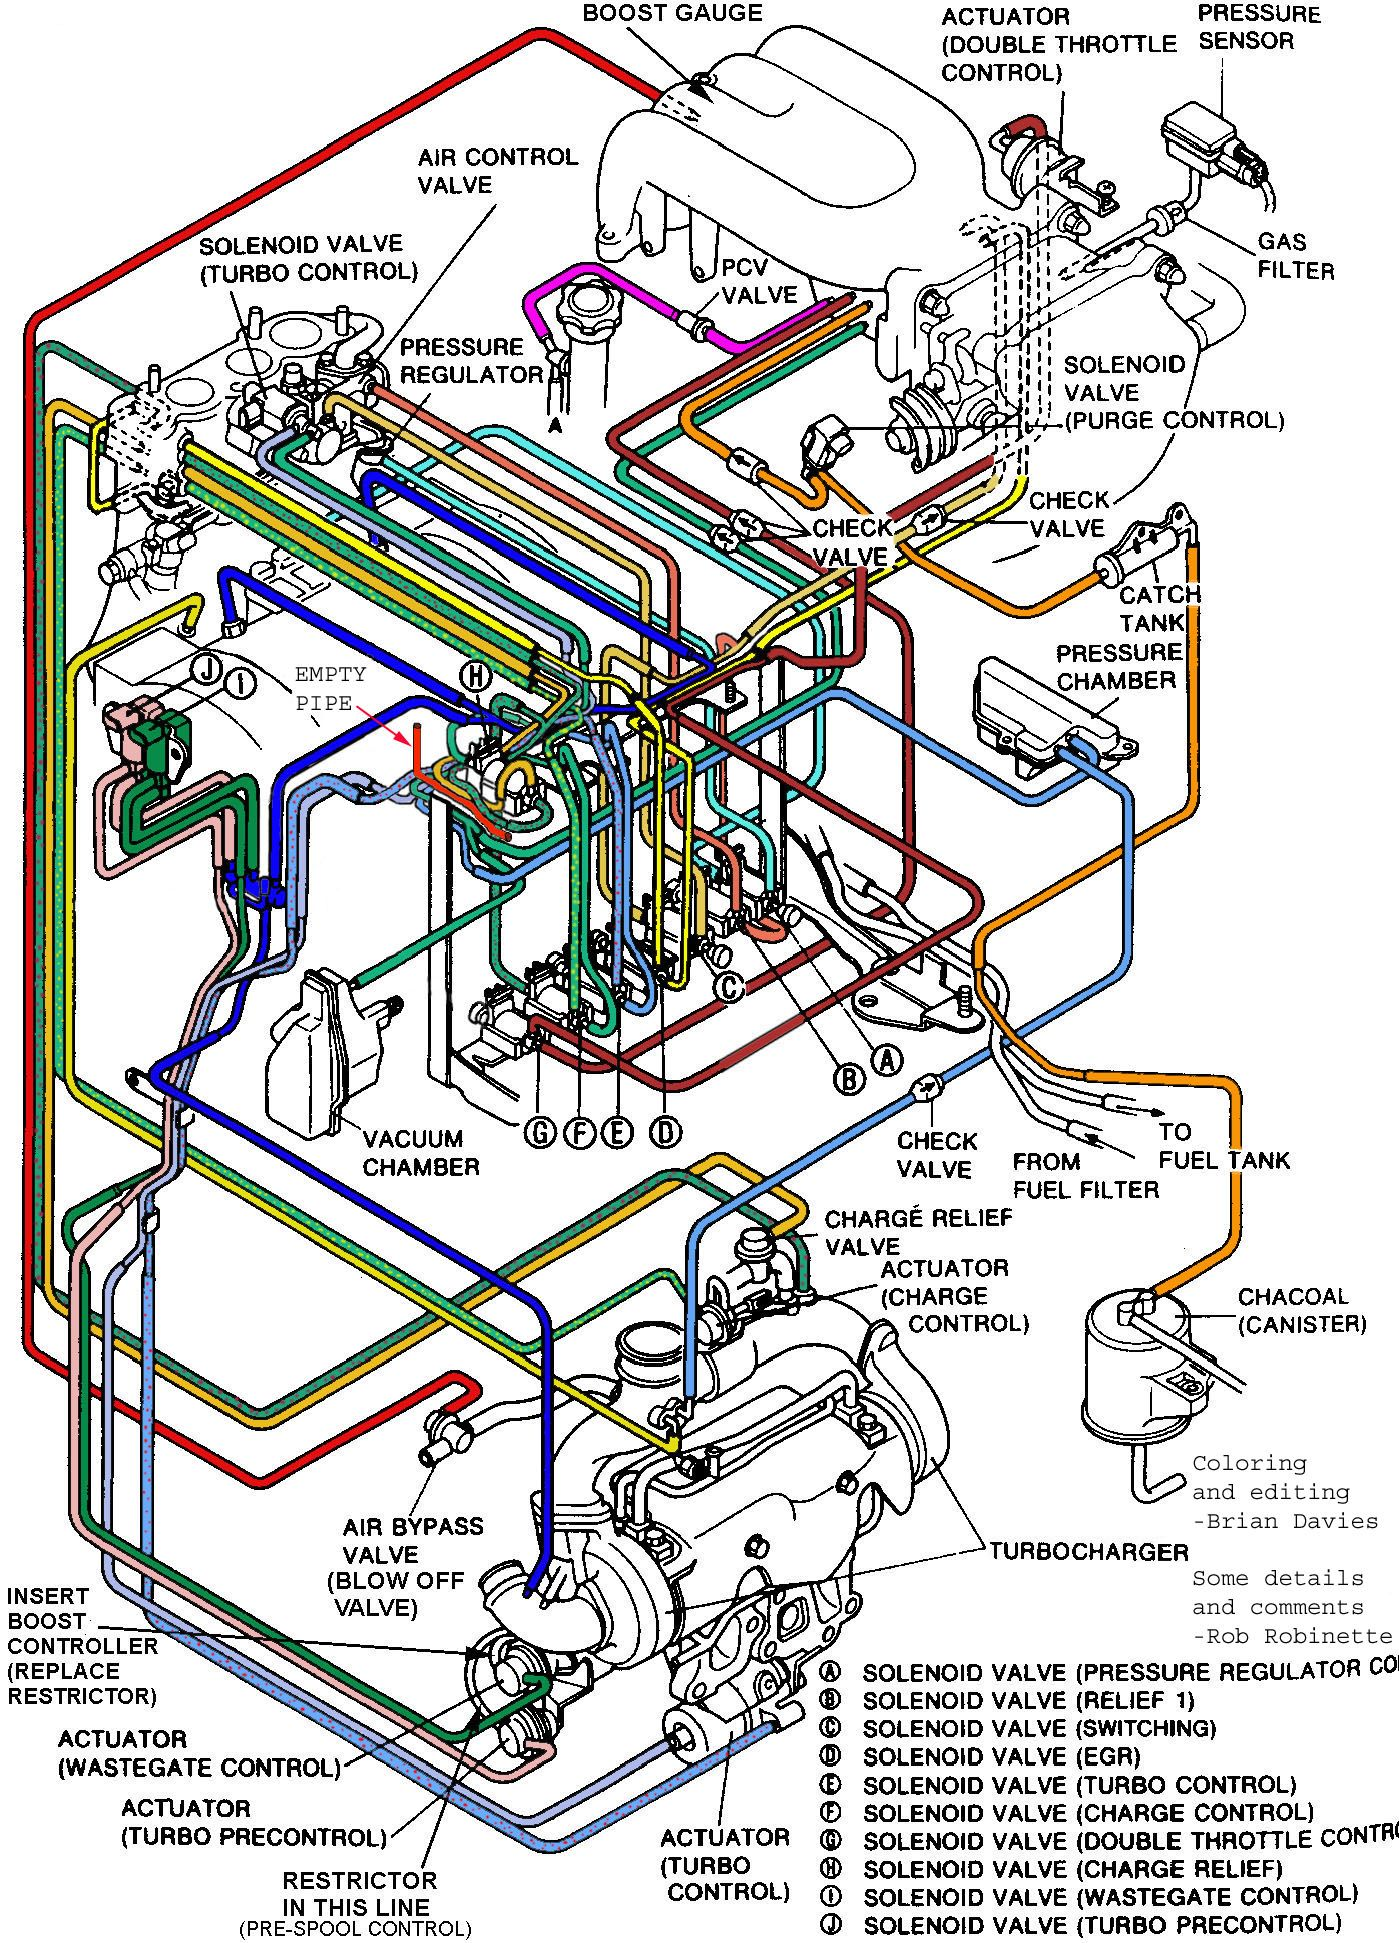 Rx7 Fc Wiring Diagram Library Pressure Tank Pin By Ayaco 011 On Auto Manual Parts Pinterest Mazda